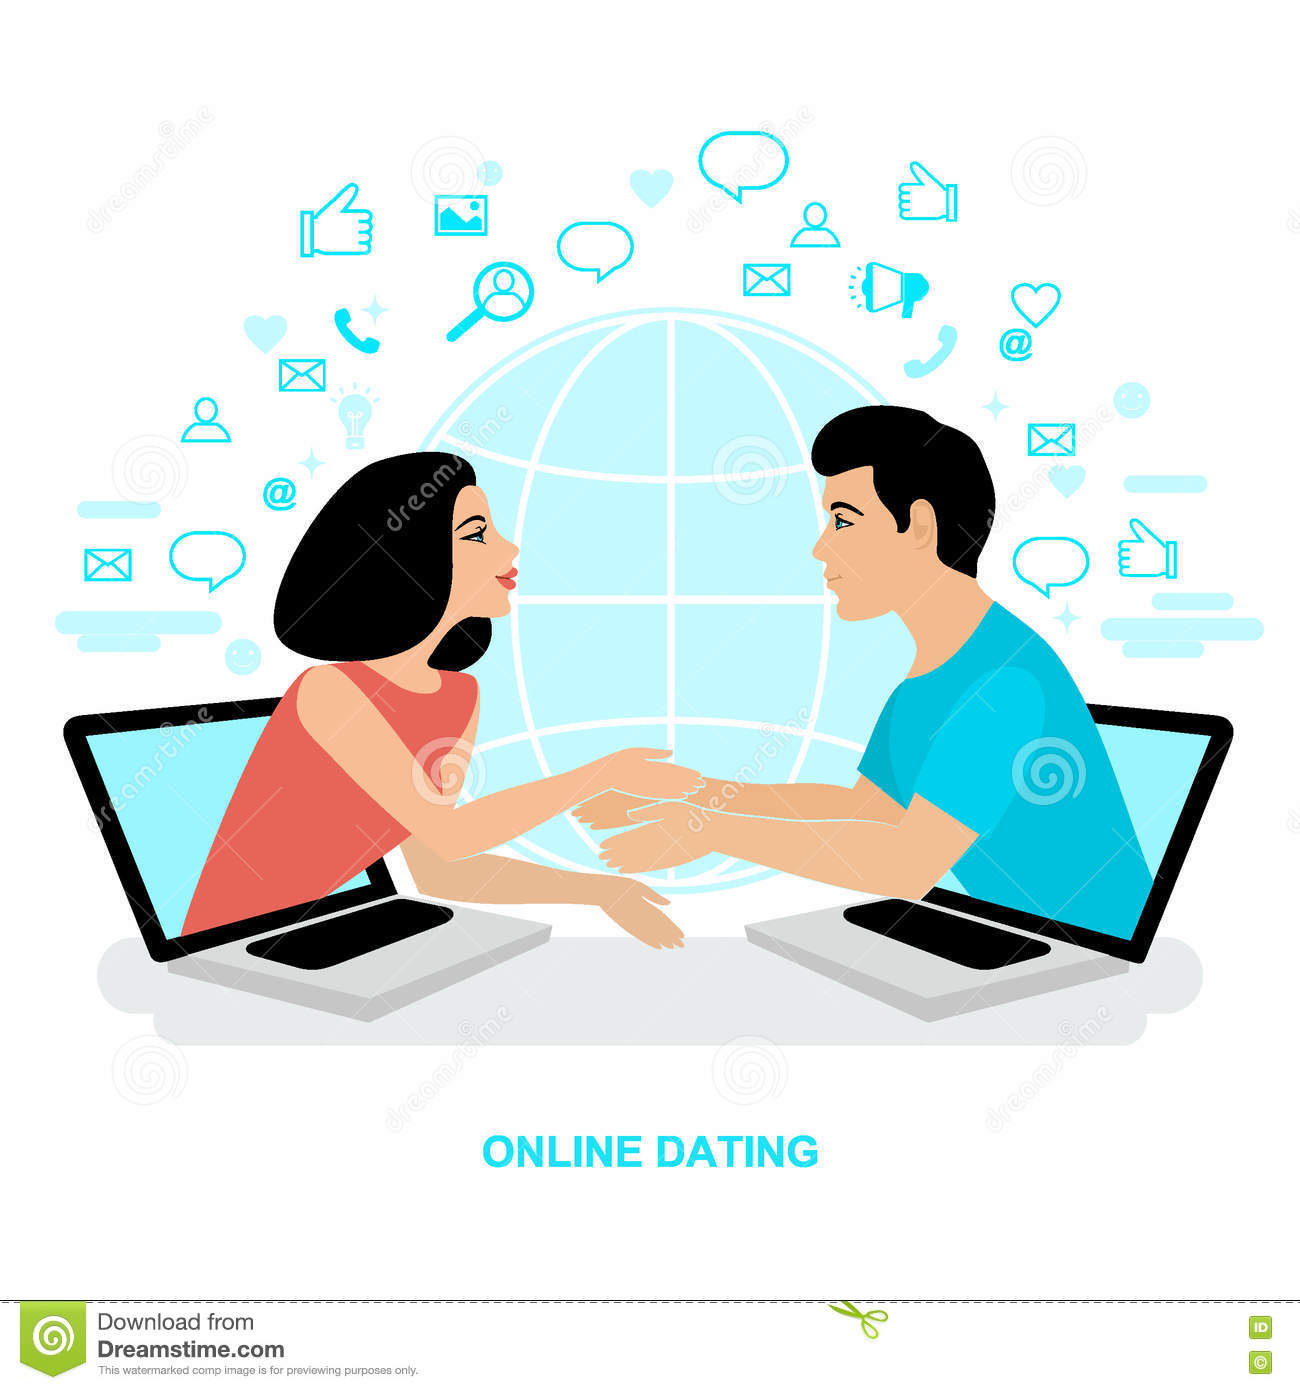 Christian Dating for Christian Singles in South Africa